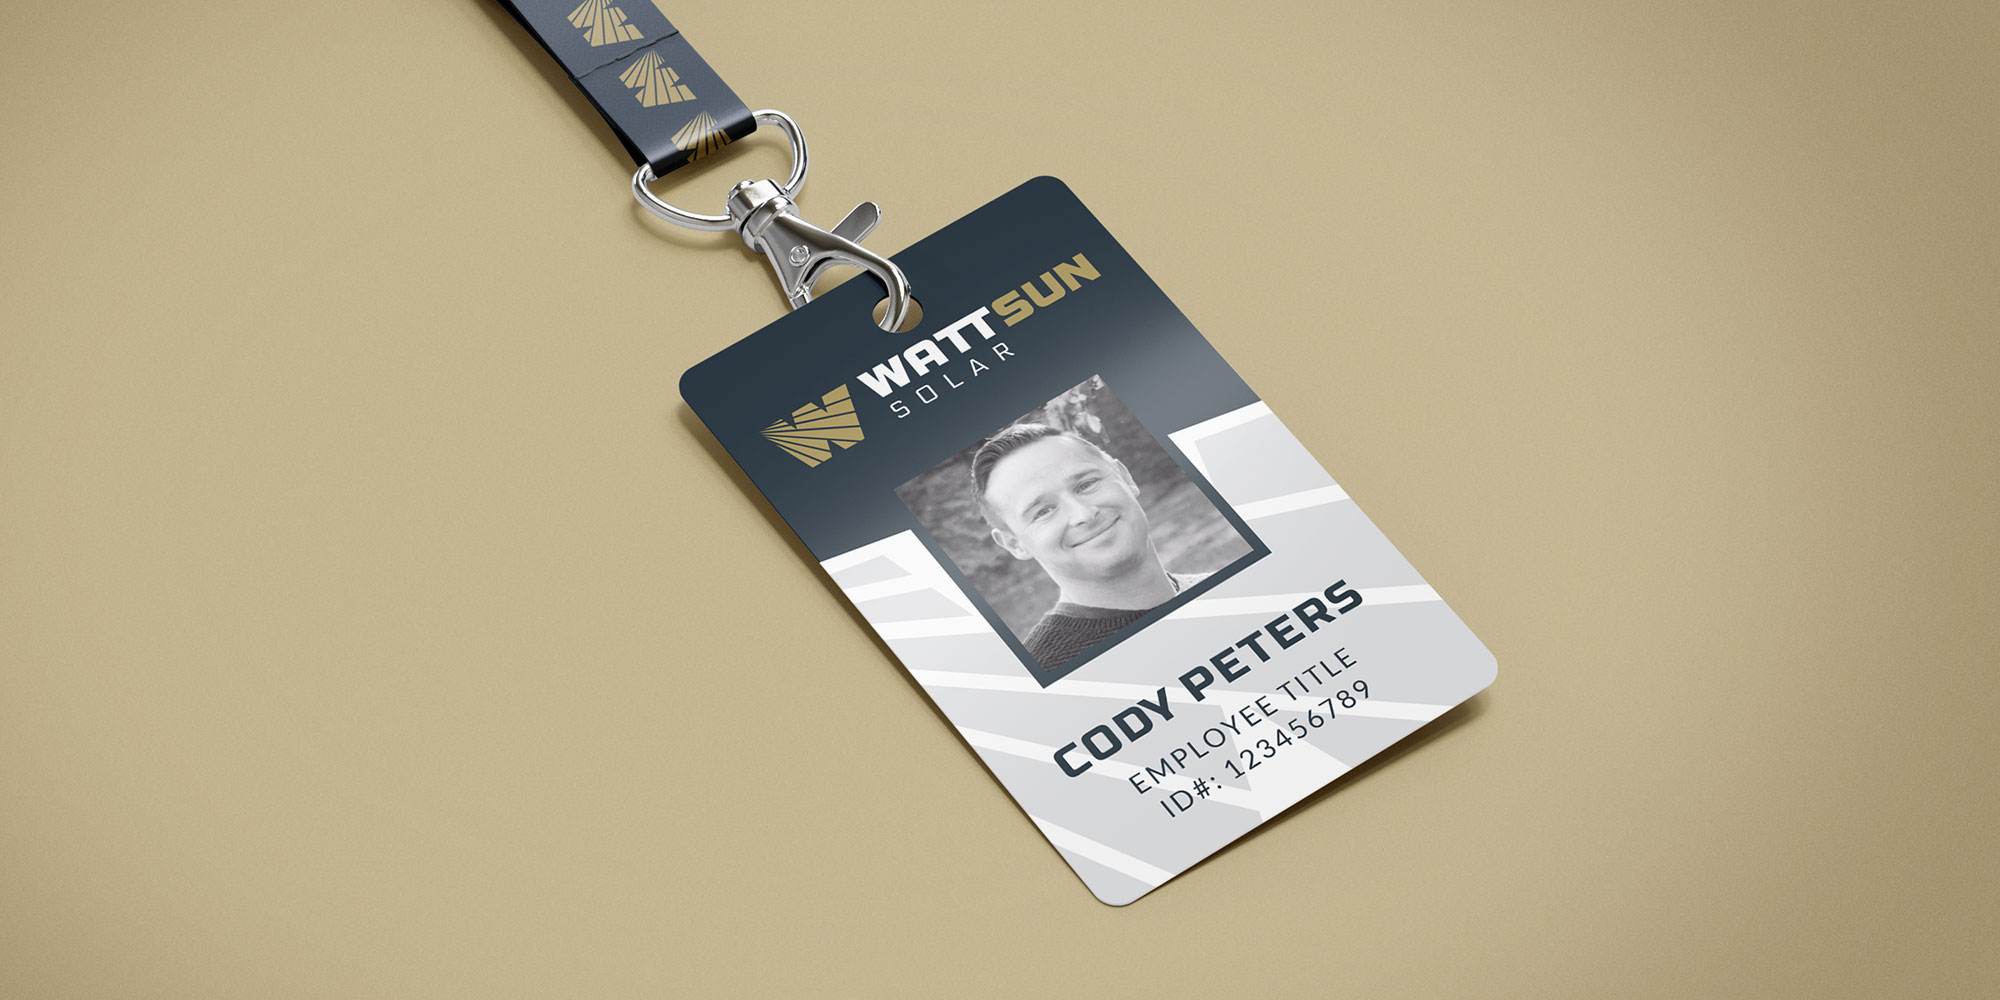 wattsun ID badge design